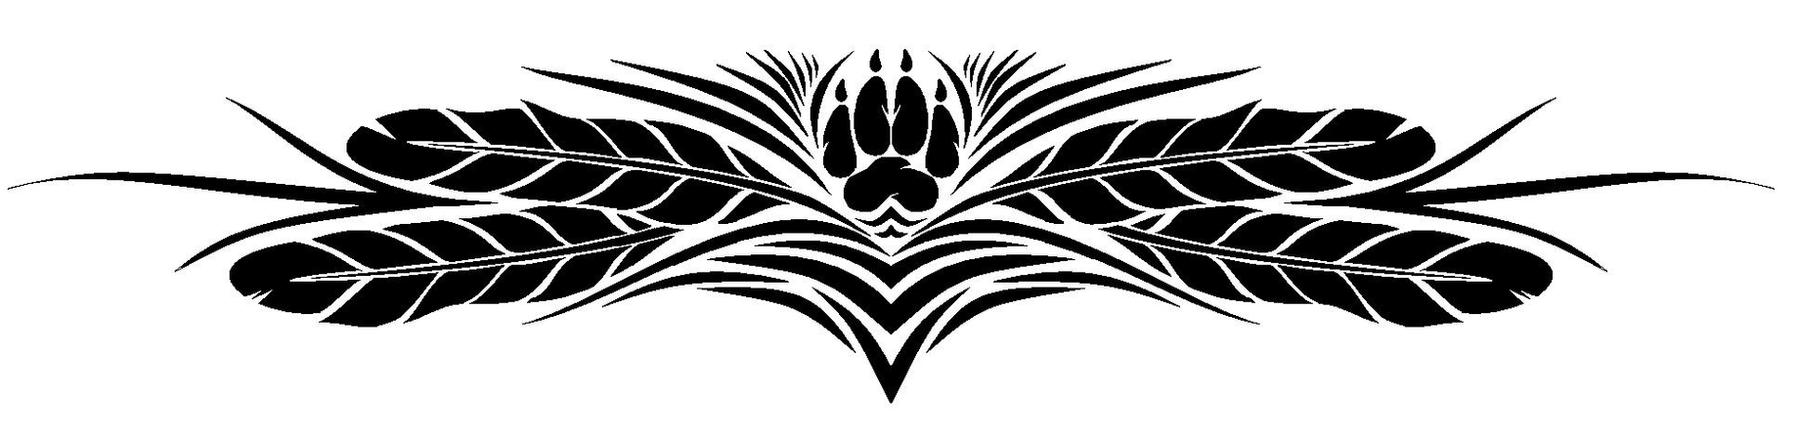 Wolf paw and feathers by talentwasted on deviantart for Wolf tattoo with feathers